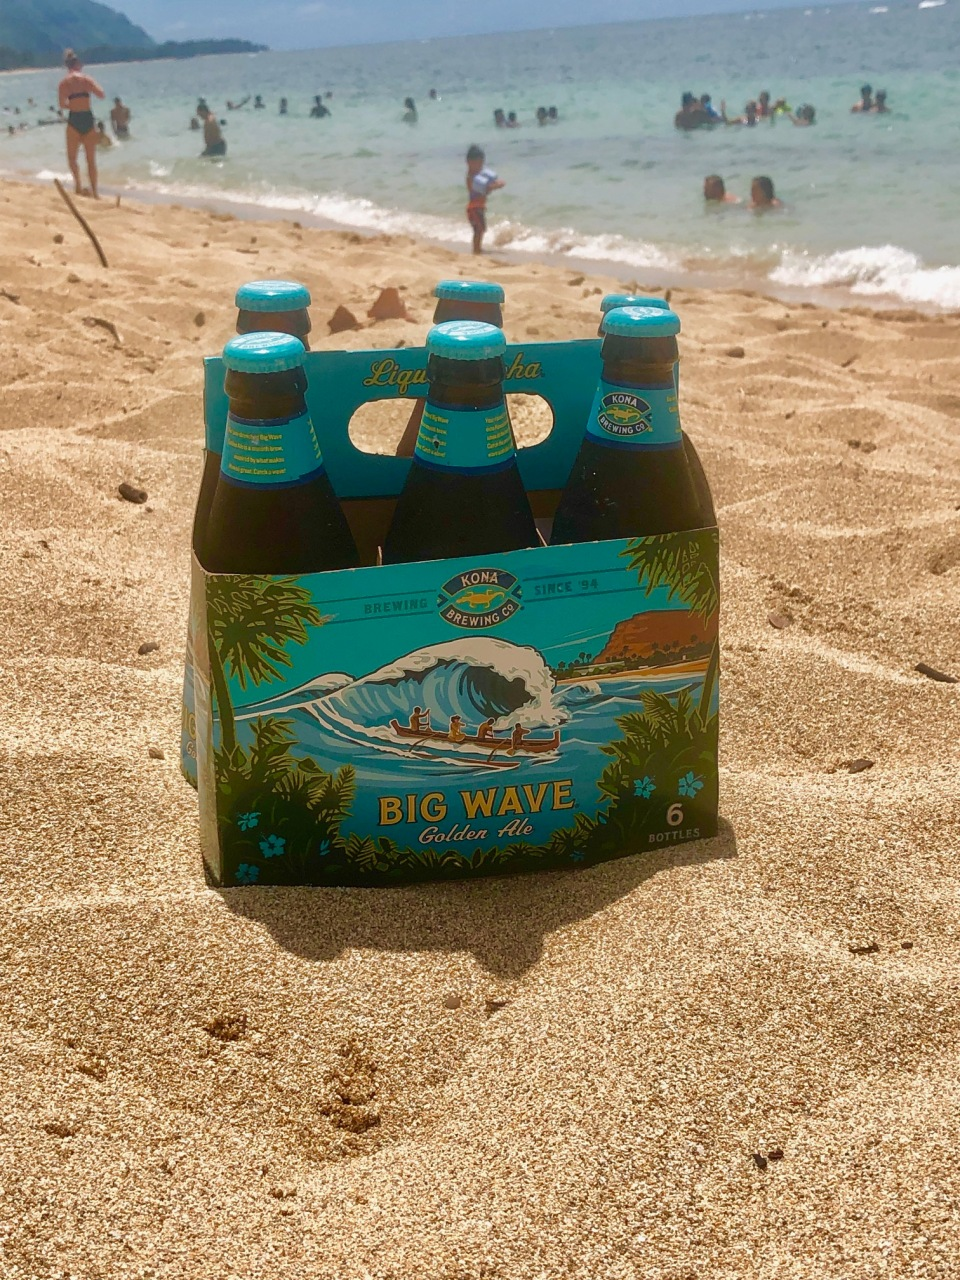 Kona Brewing Company's Big Wave Golden Ale seen on the North Shore of Oahu. Following the June settlement, Kona will include brewing location on its cardboard packaging.